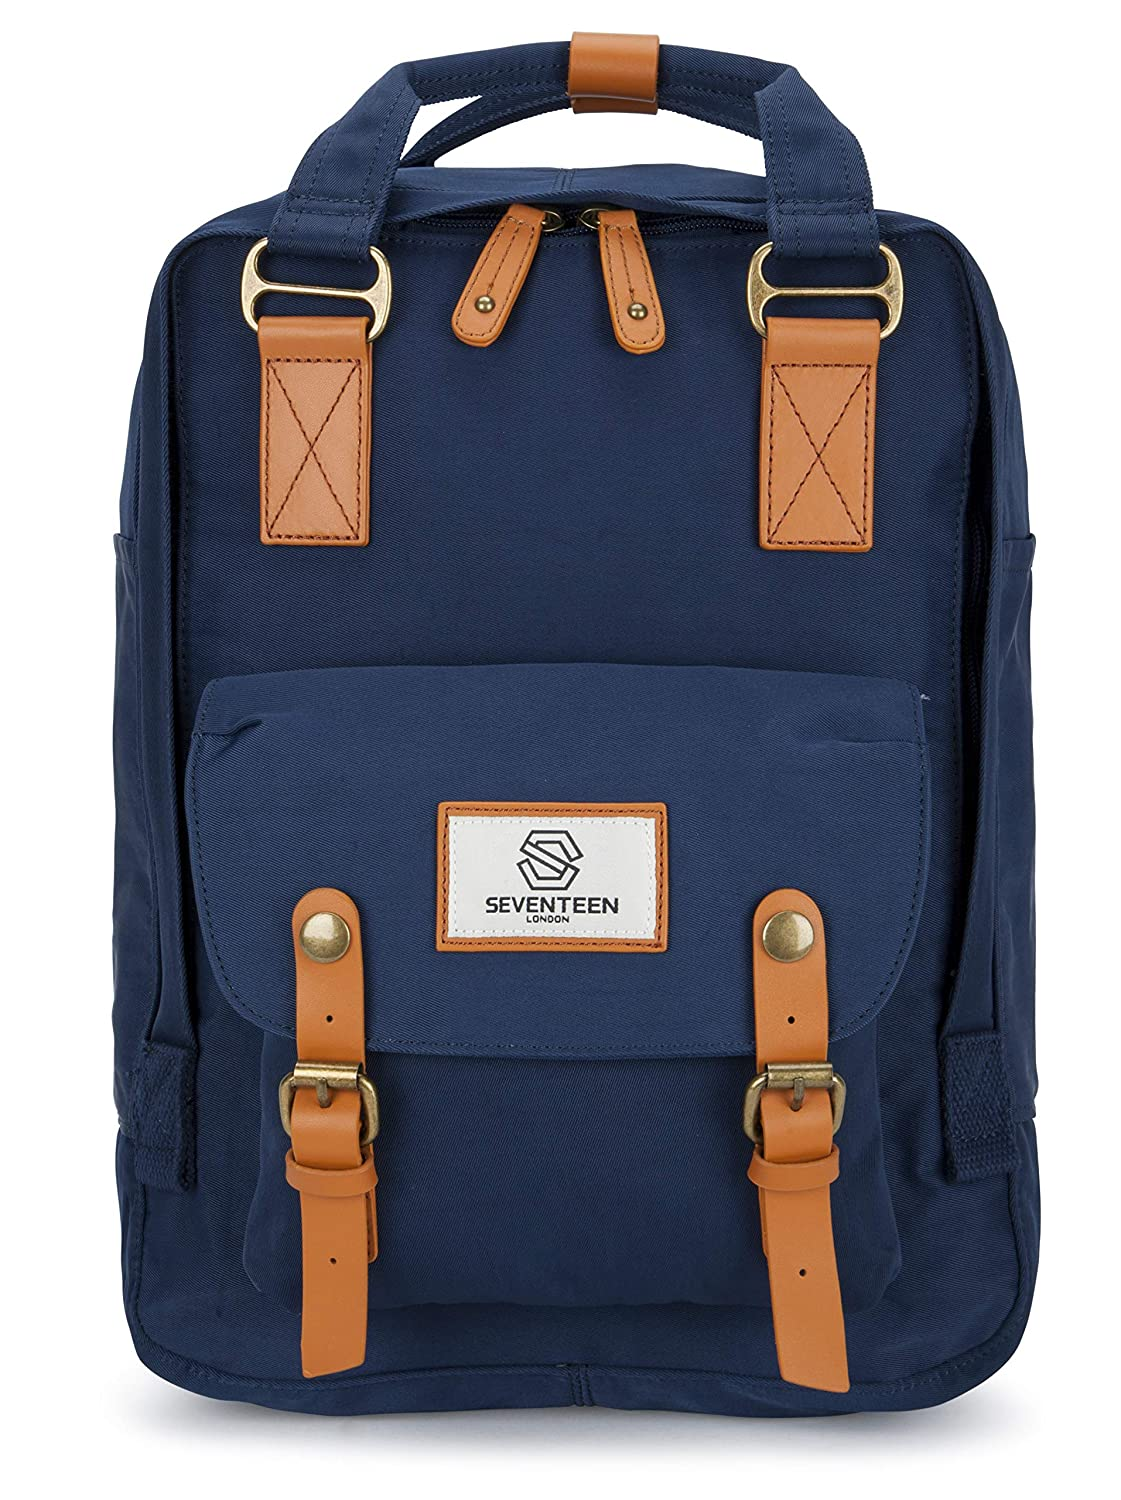 SEVENTEEN LONDON – Marylebone Classic Unisex Backpack for College School Travel Luggage Bag